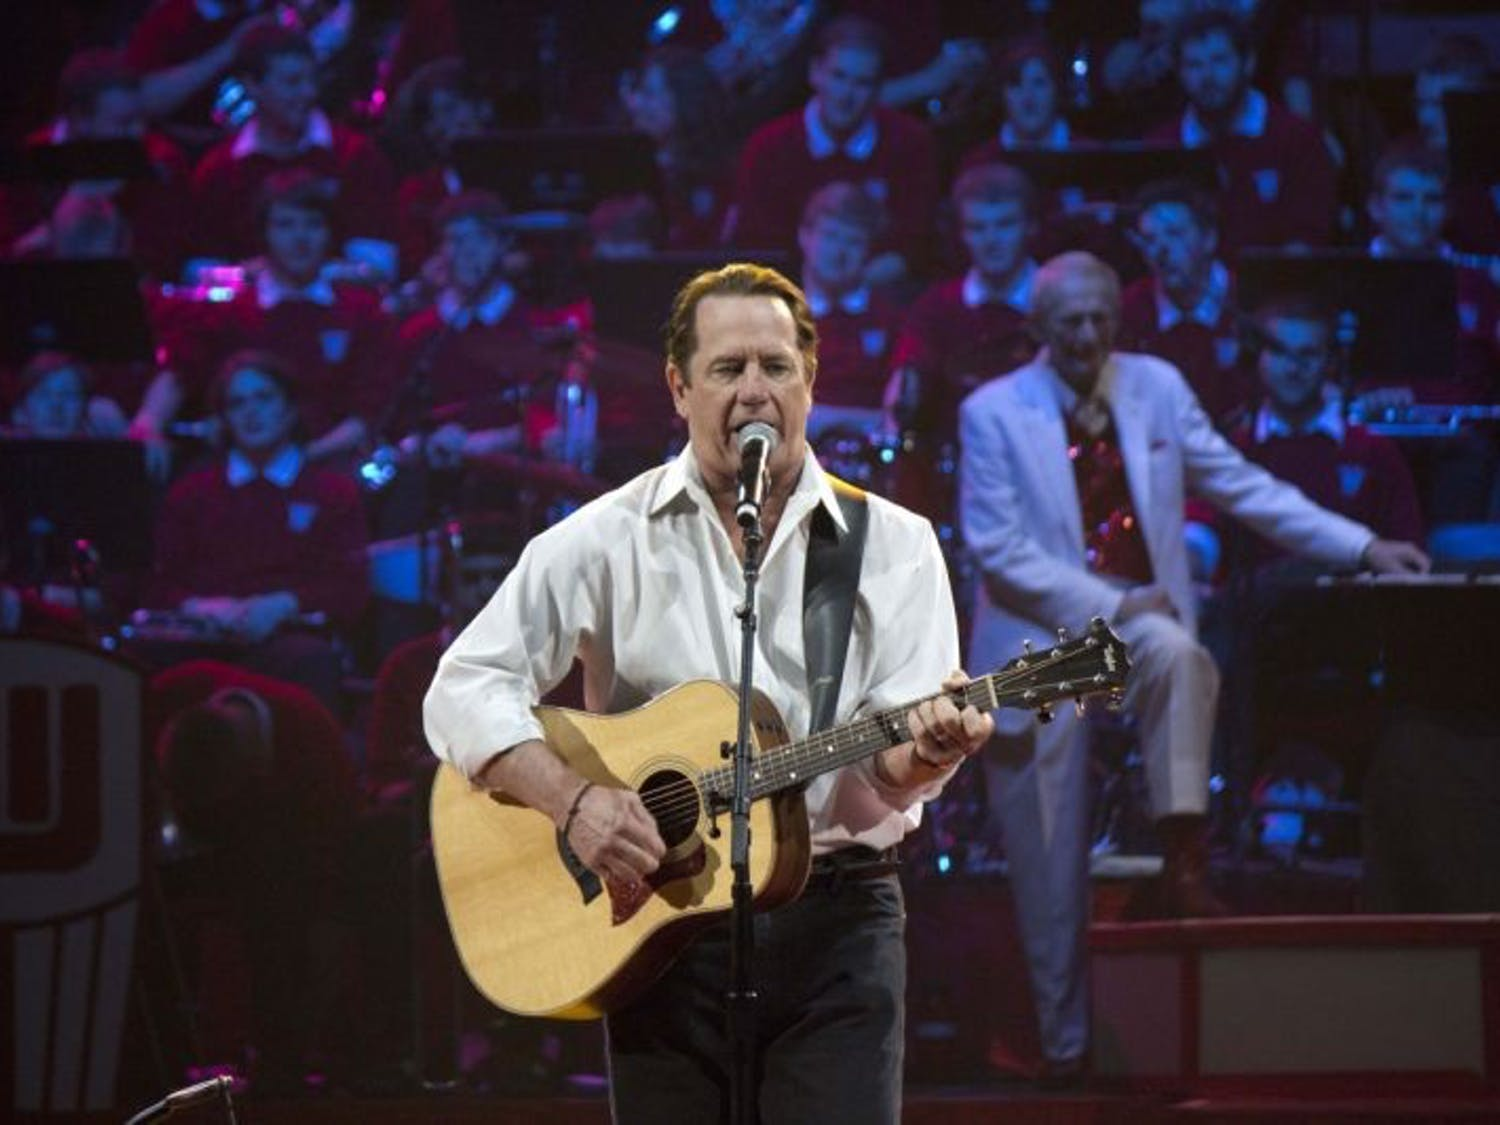 The University of Wisconsin-Madison 'Varsity' band performed its 40th annual spring concert Thursday, Friday and Saturday. Special guests included Tom Wopat and Mark Pender. It played Wisconsin favorites, as well as James Bond, The Phantom of the Opera and The Beatles.